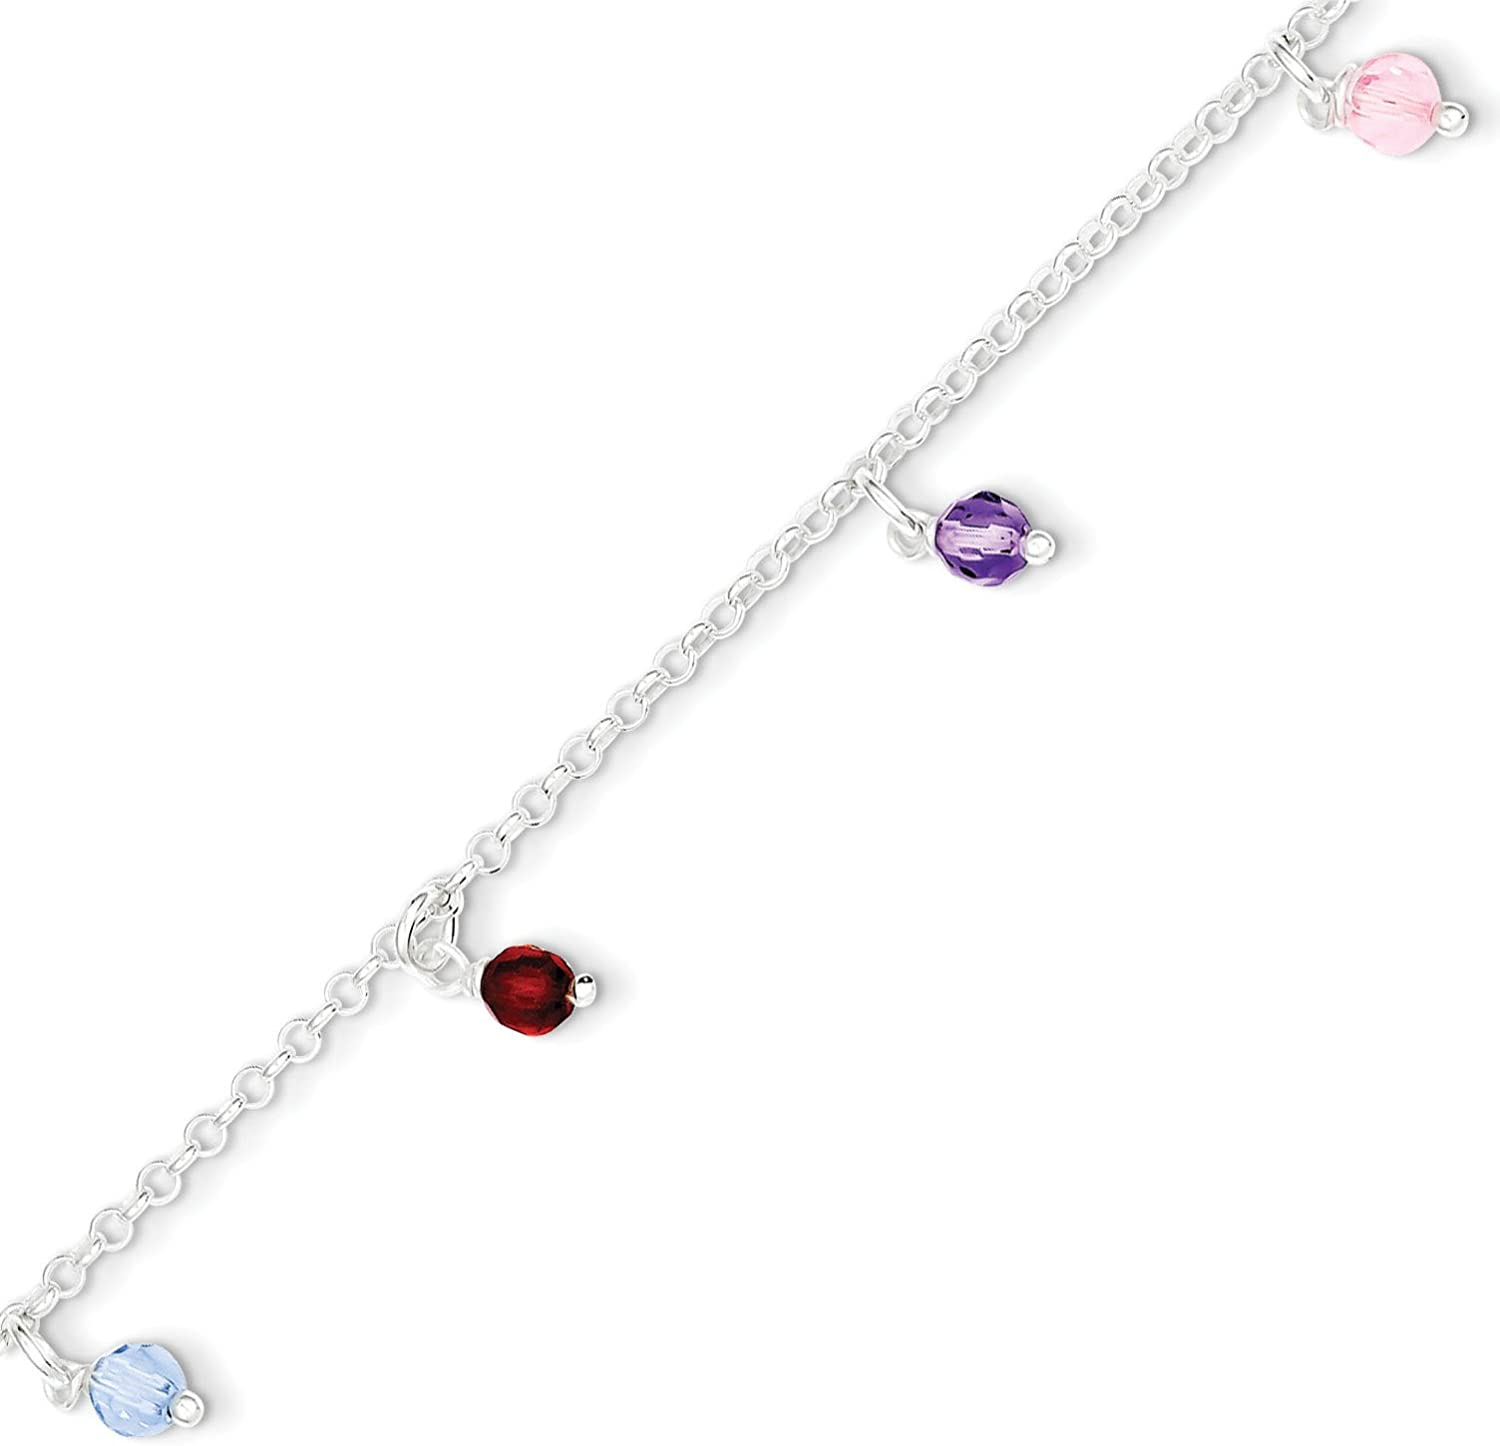 Anklet West Coast Jewelry Sterling Silver and Multi-Colored Beads Polished with 1 Inch Ext 9 Inches Long